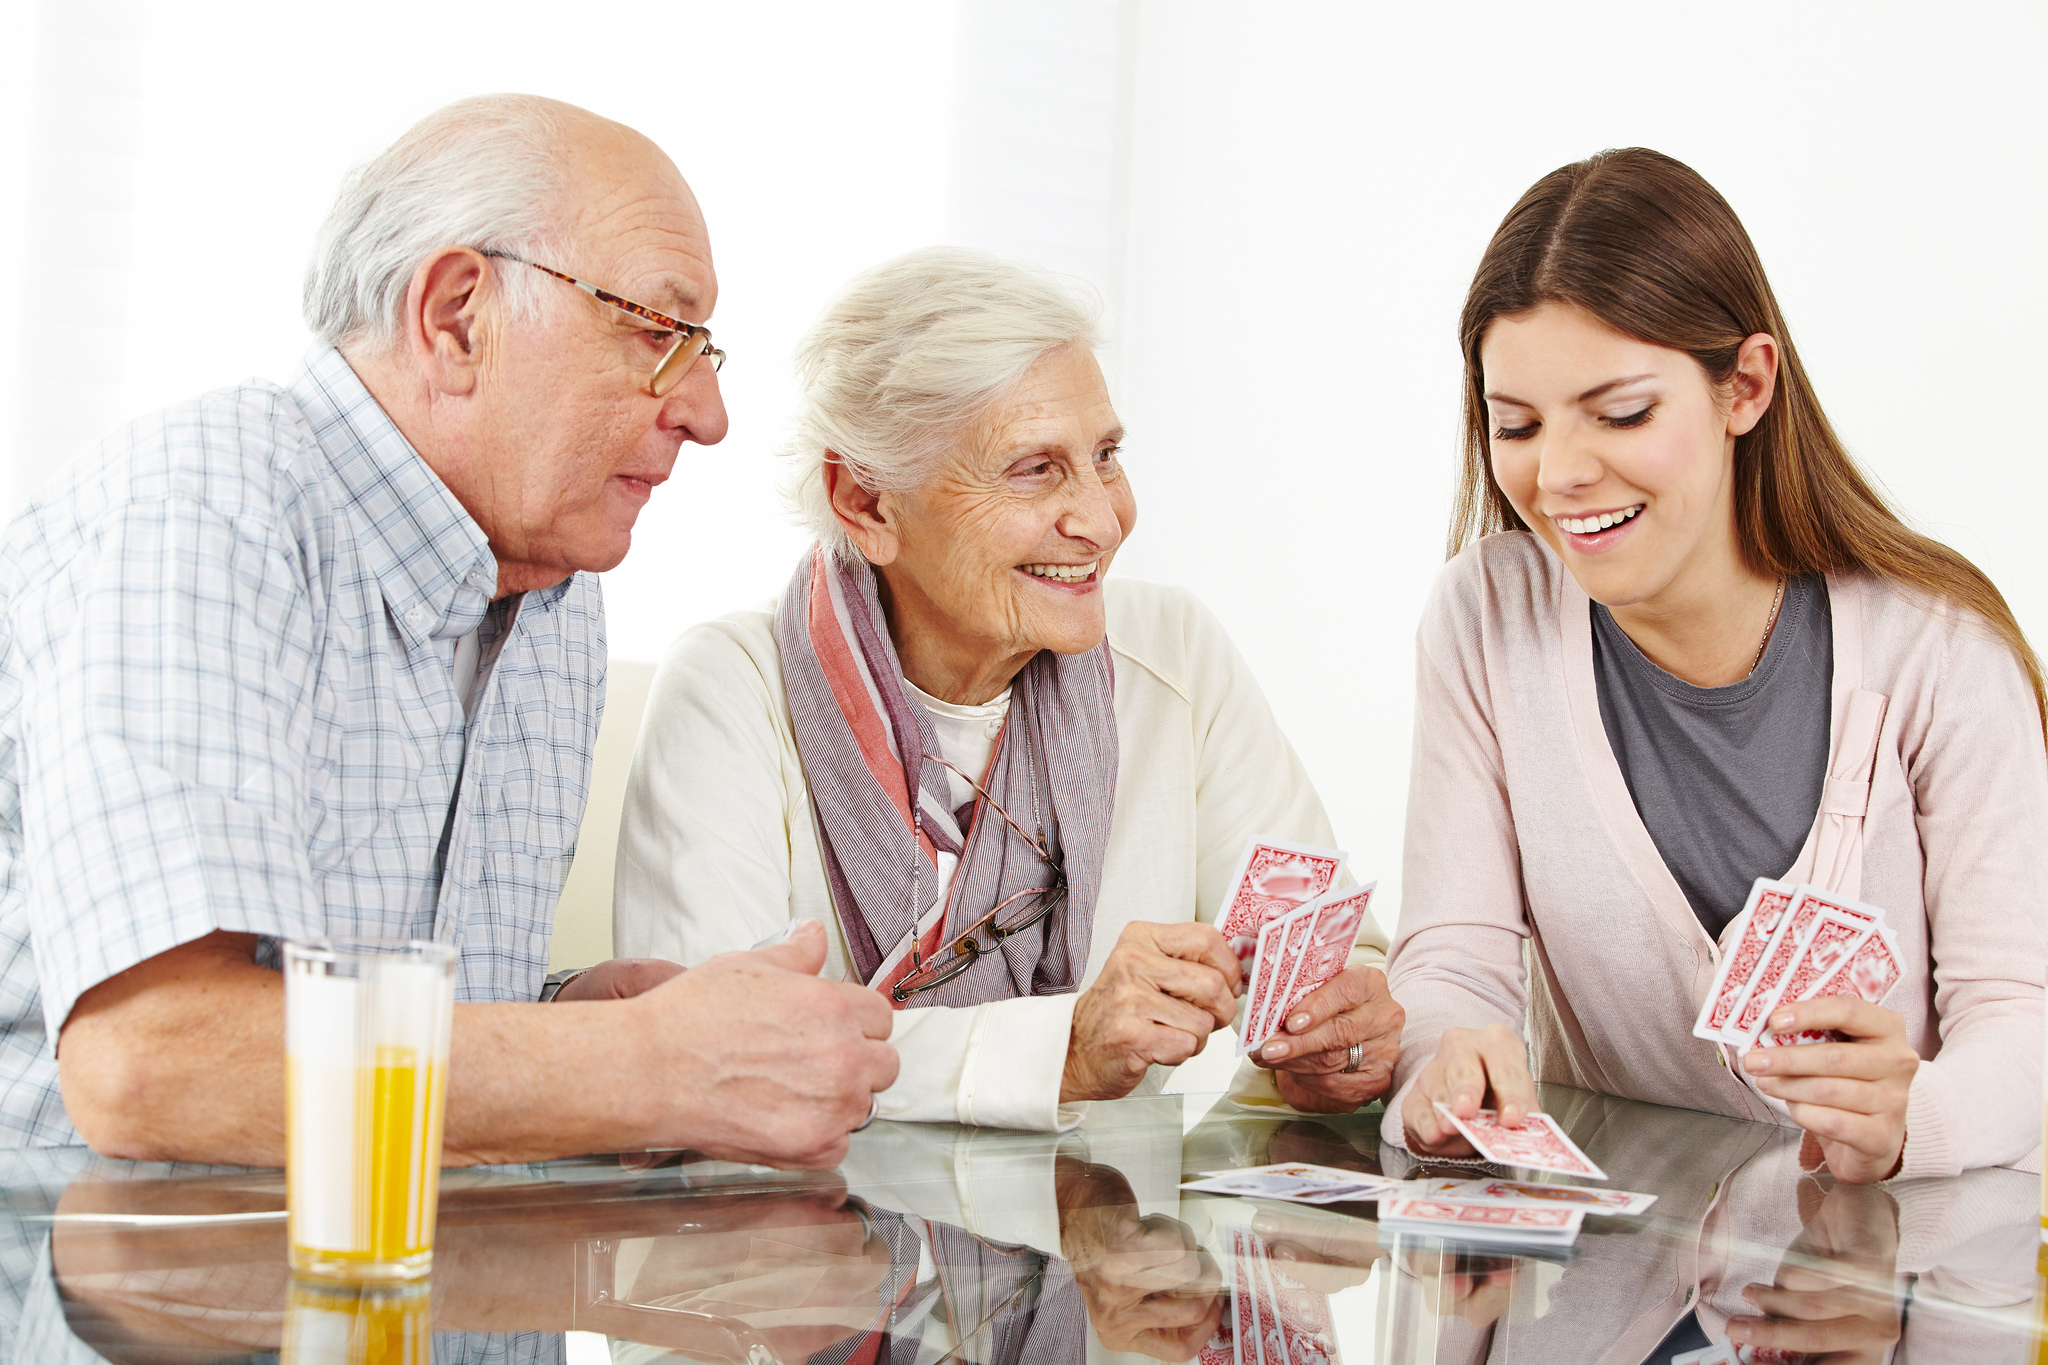 Home Instead Senior Care, Elmbridge and Spelthorne - Walton on Thames based Care Services